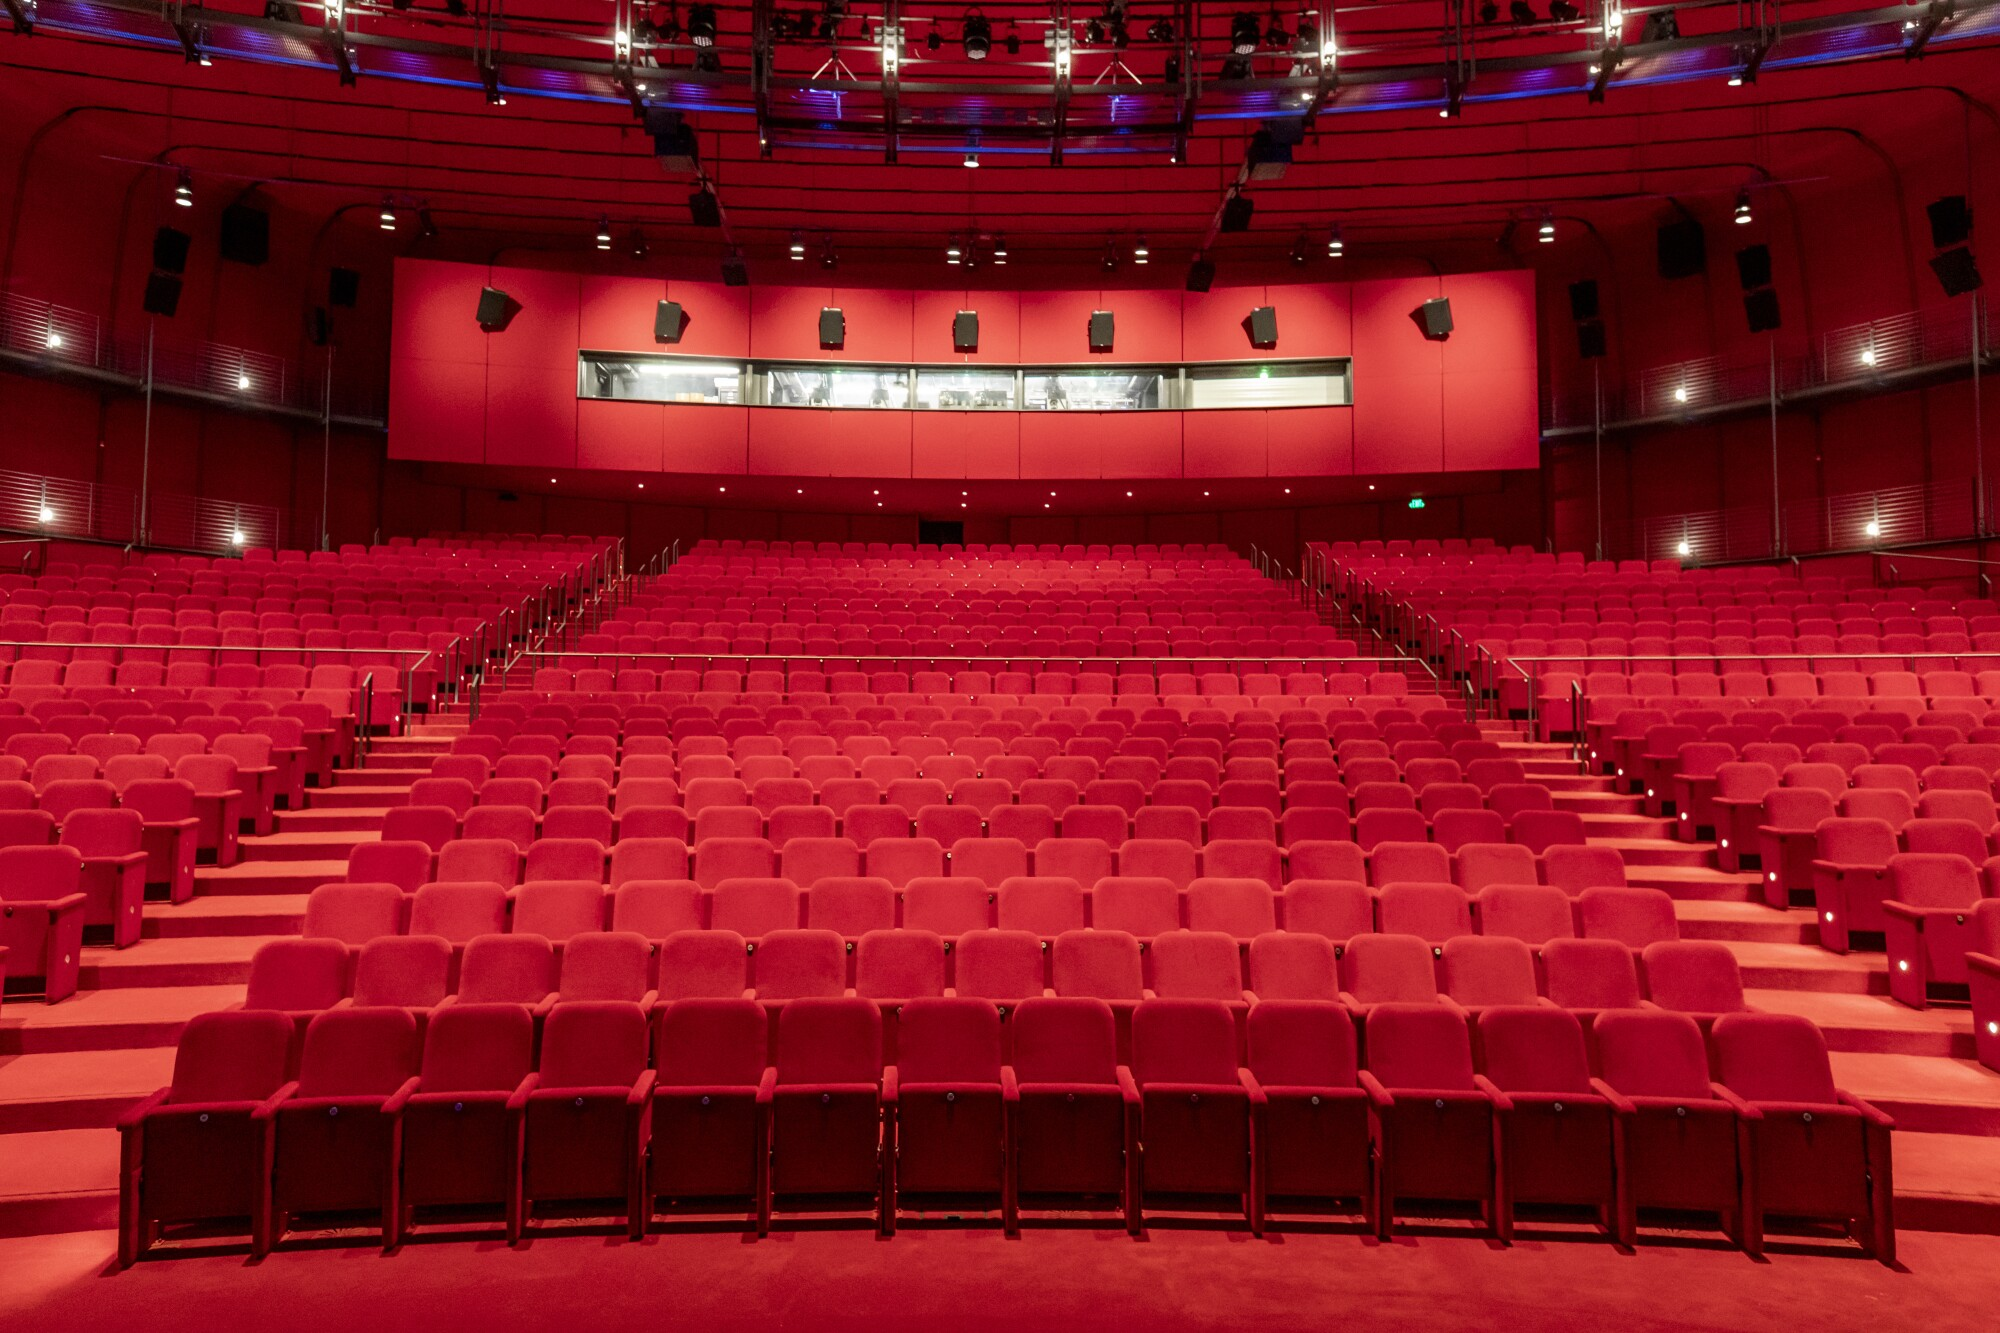 The David Geffen Theater at the new Academy Museum of Motion Pictures is a sea of red — red seats, red floor, red walls.